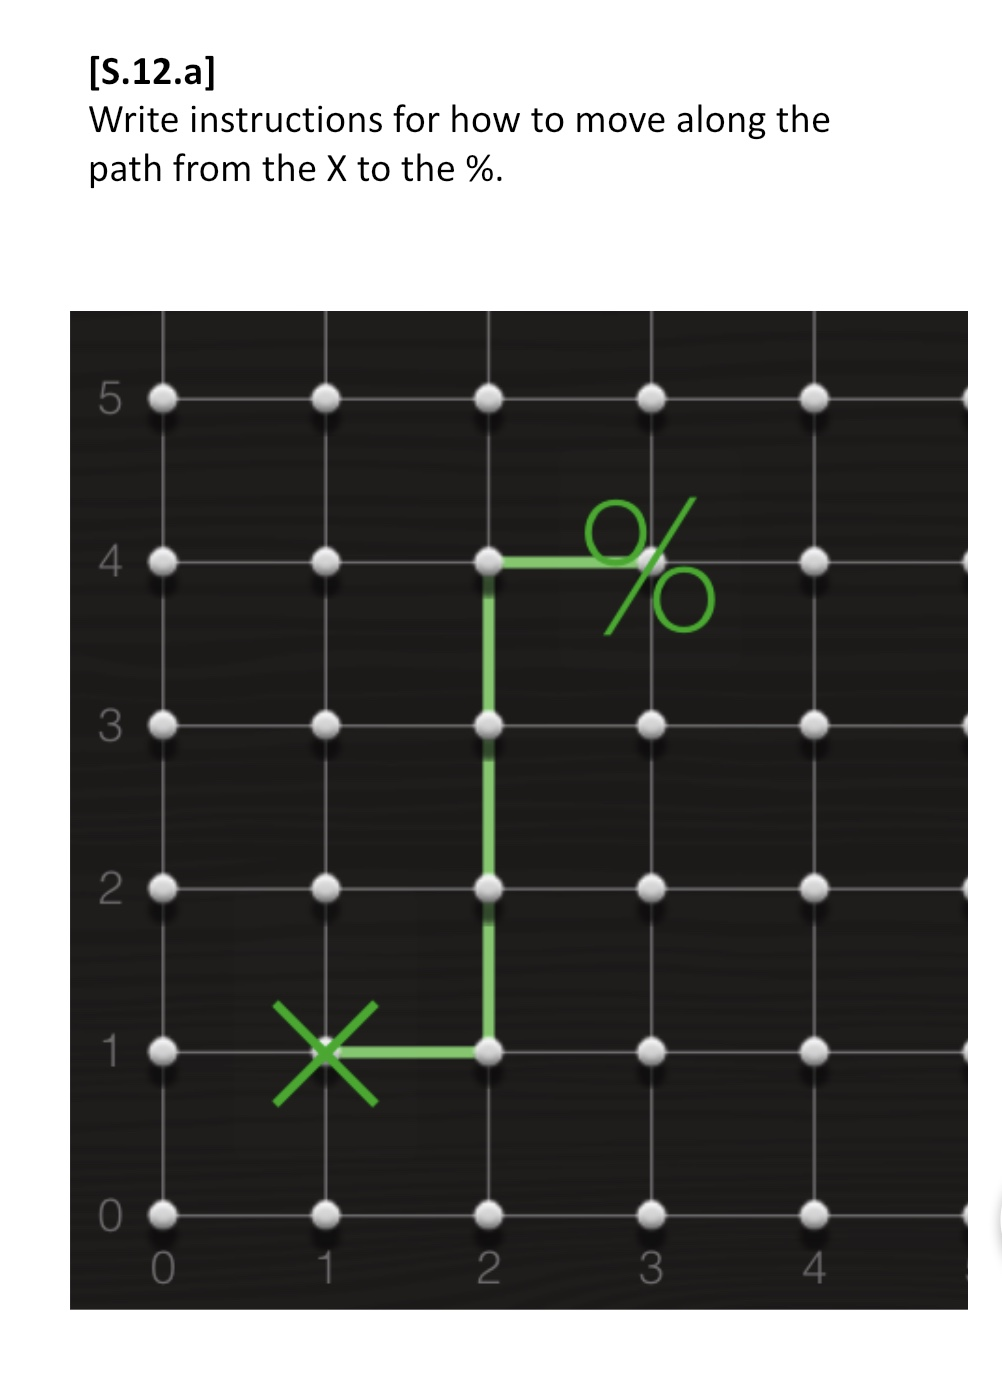 Sequencing assessment item asking students 'Write instructions for how to move along the path from the X to the %' followed by a graphic showing quadrant 1 of a coordinate plane from the origin to (4,5) with an X on (1,1) connected to a % (percent sign) at (3,4) via a path from (1,1) to (2,1) to (2,4) to (3,4)